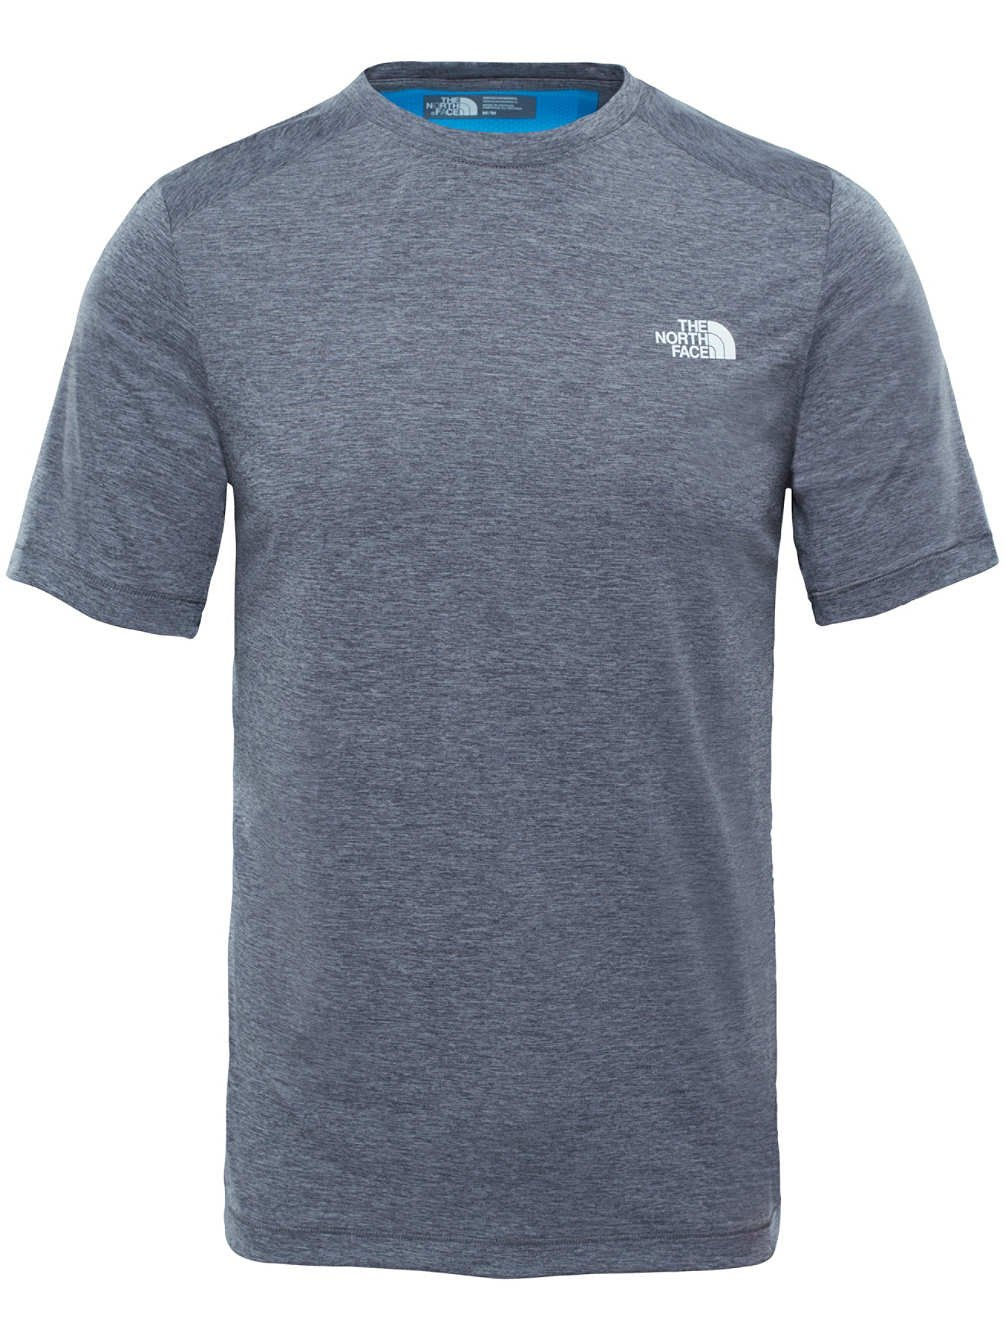 THE NORTH FACE M shareta Crew Tee Shirt, Herren